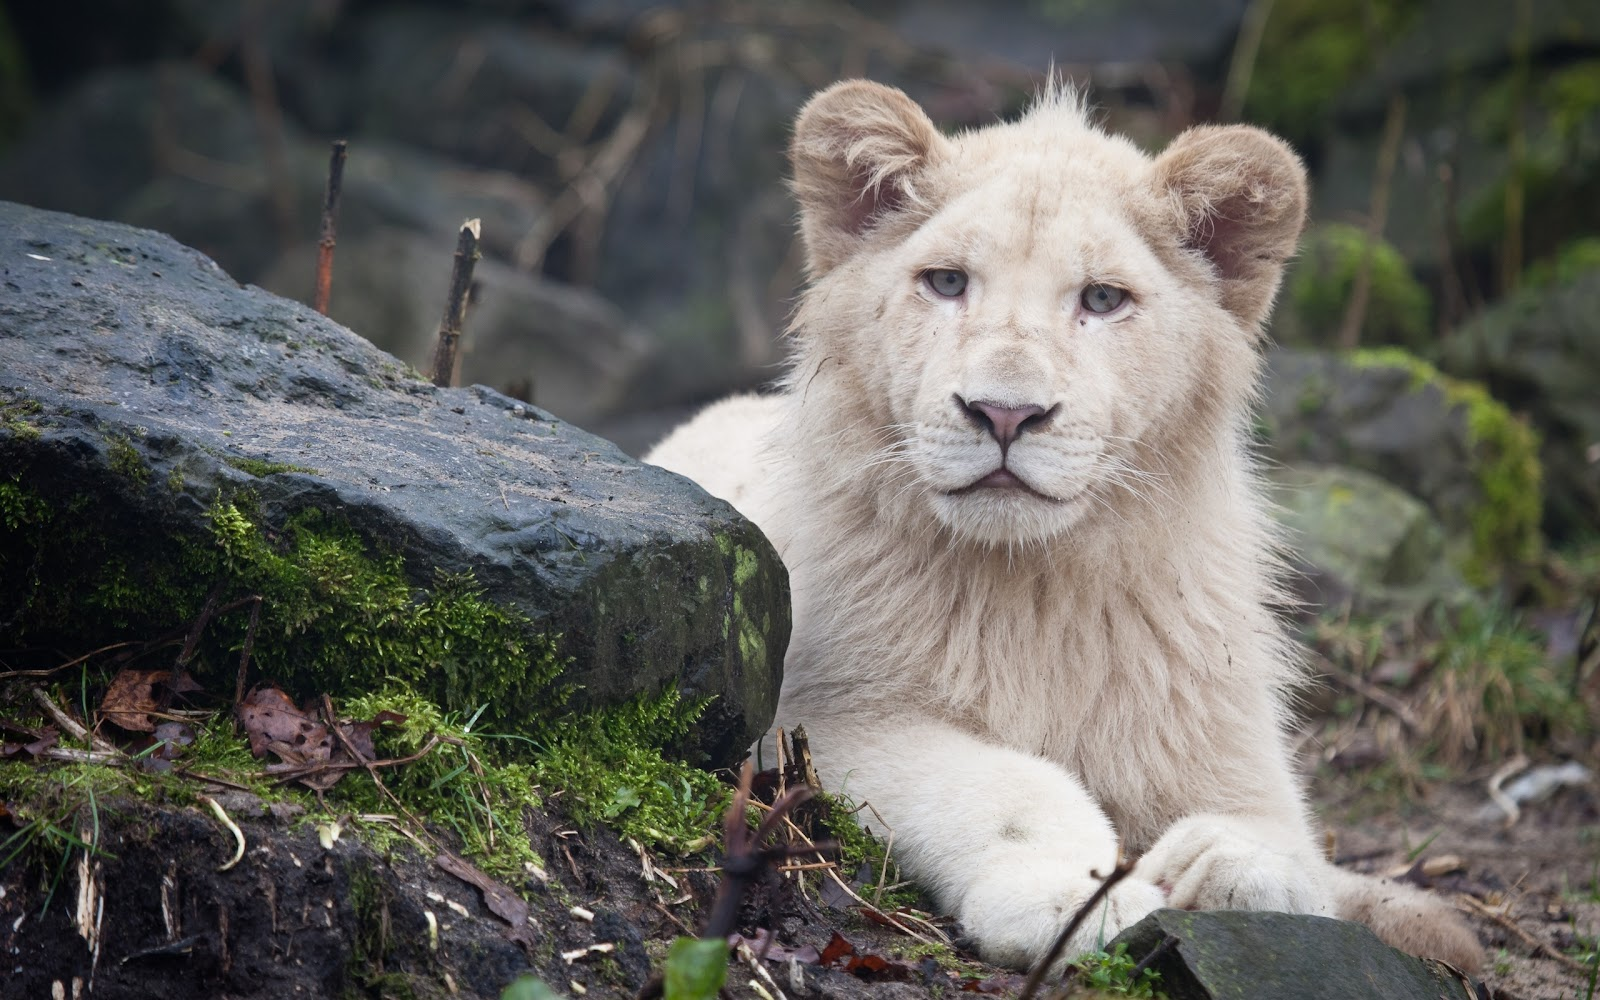 hd wallpapers animals 1080p - photo #19